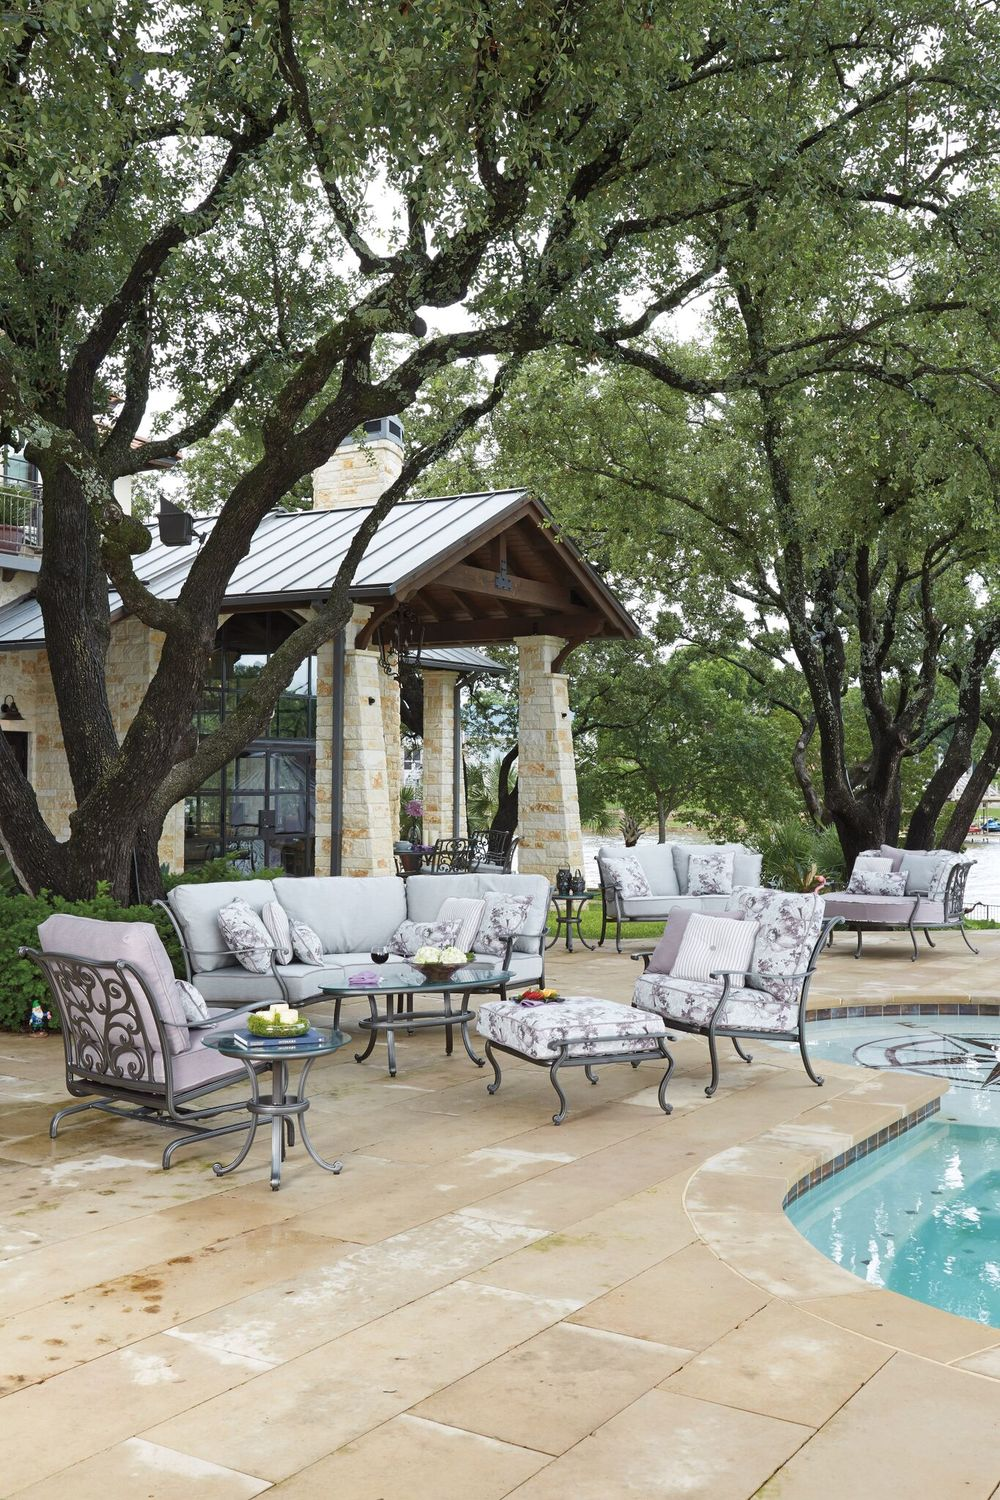 Woodard Outdoor Furniture Fleet Plummer